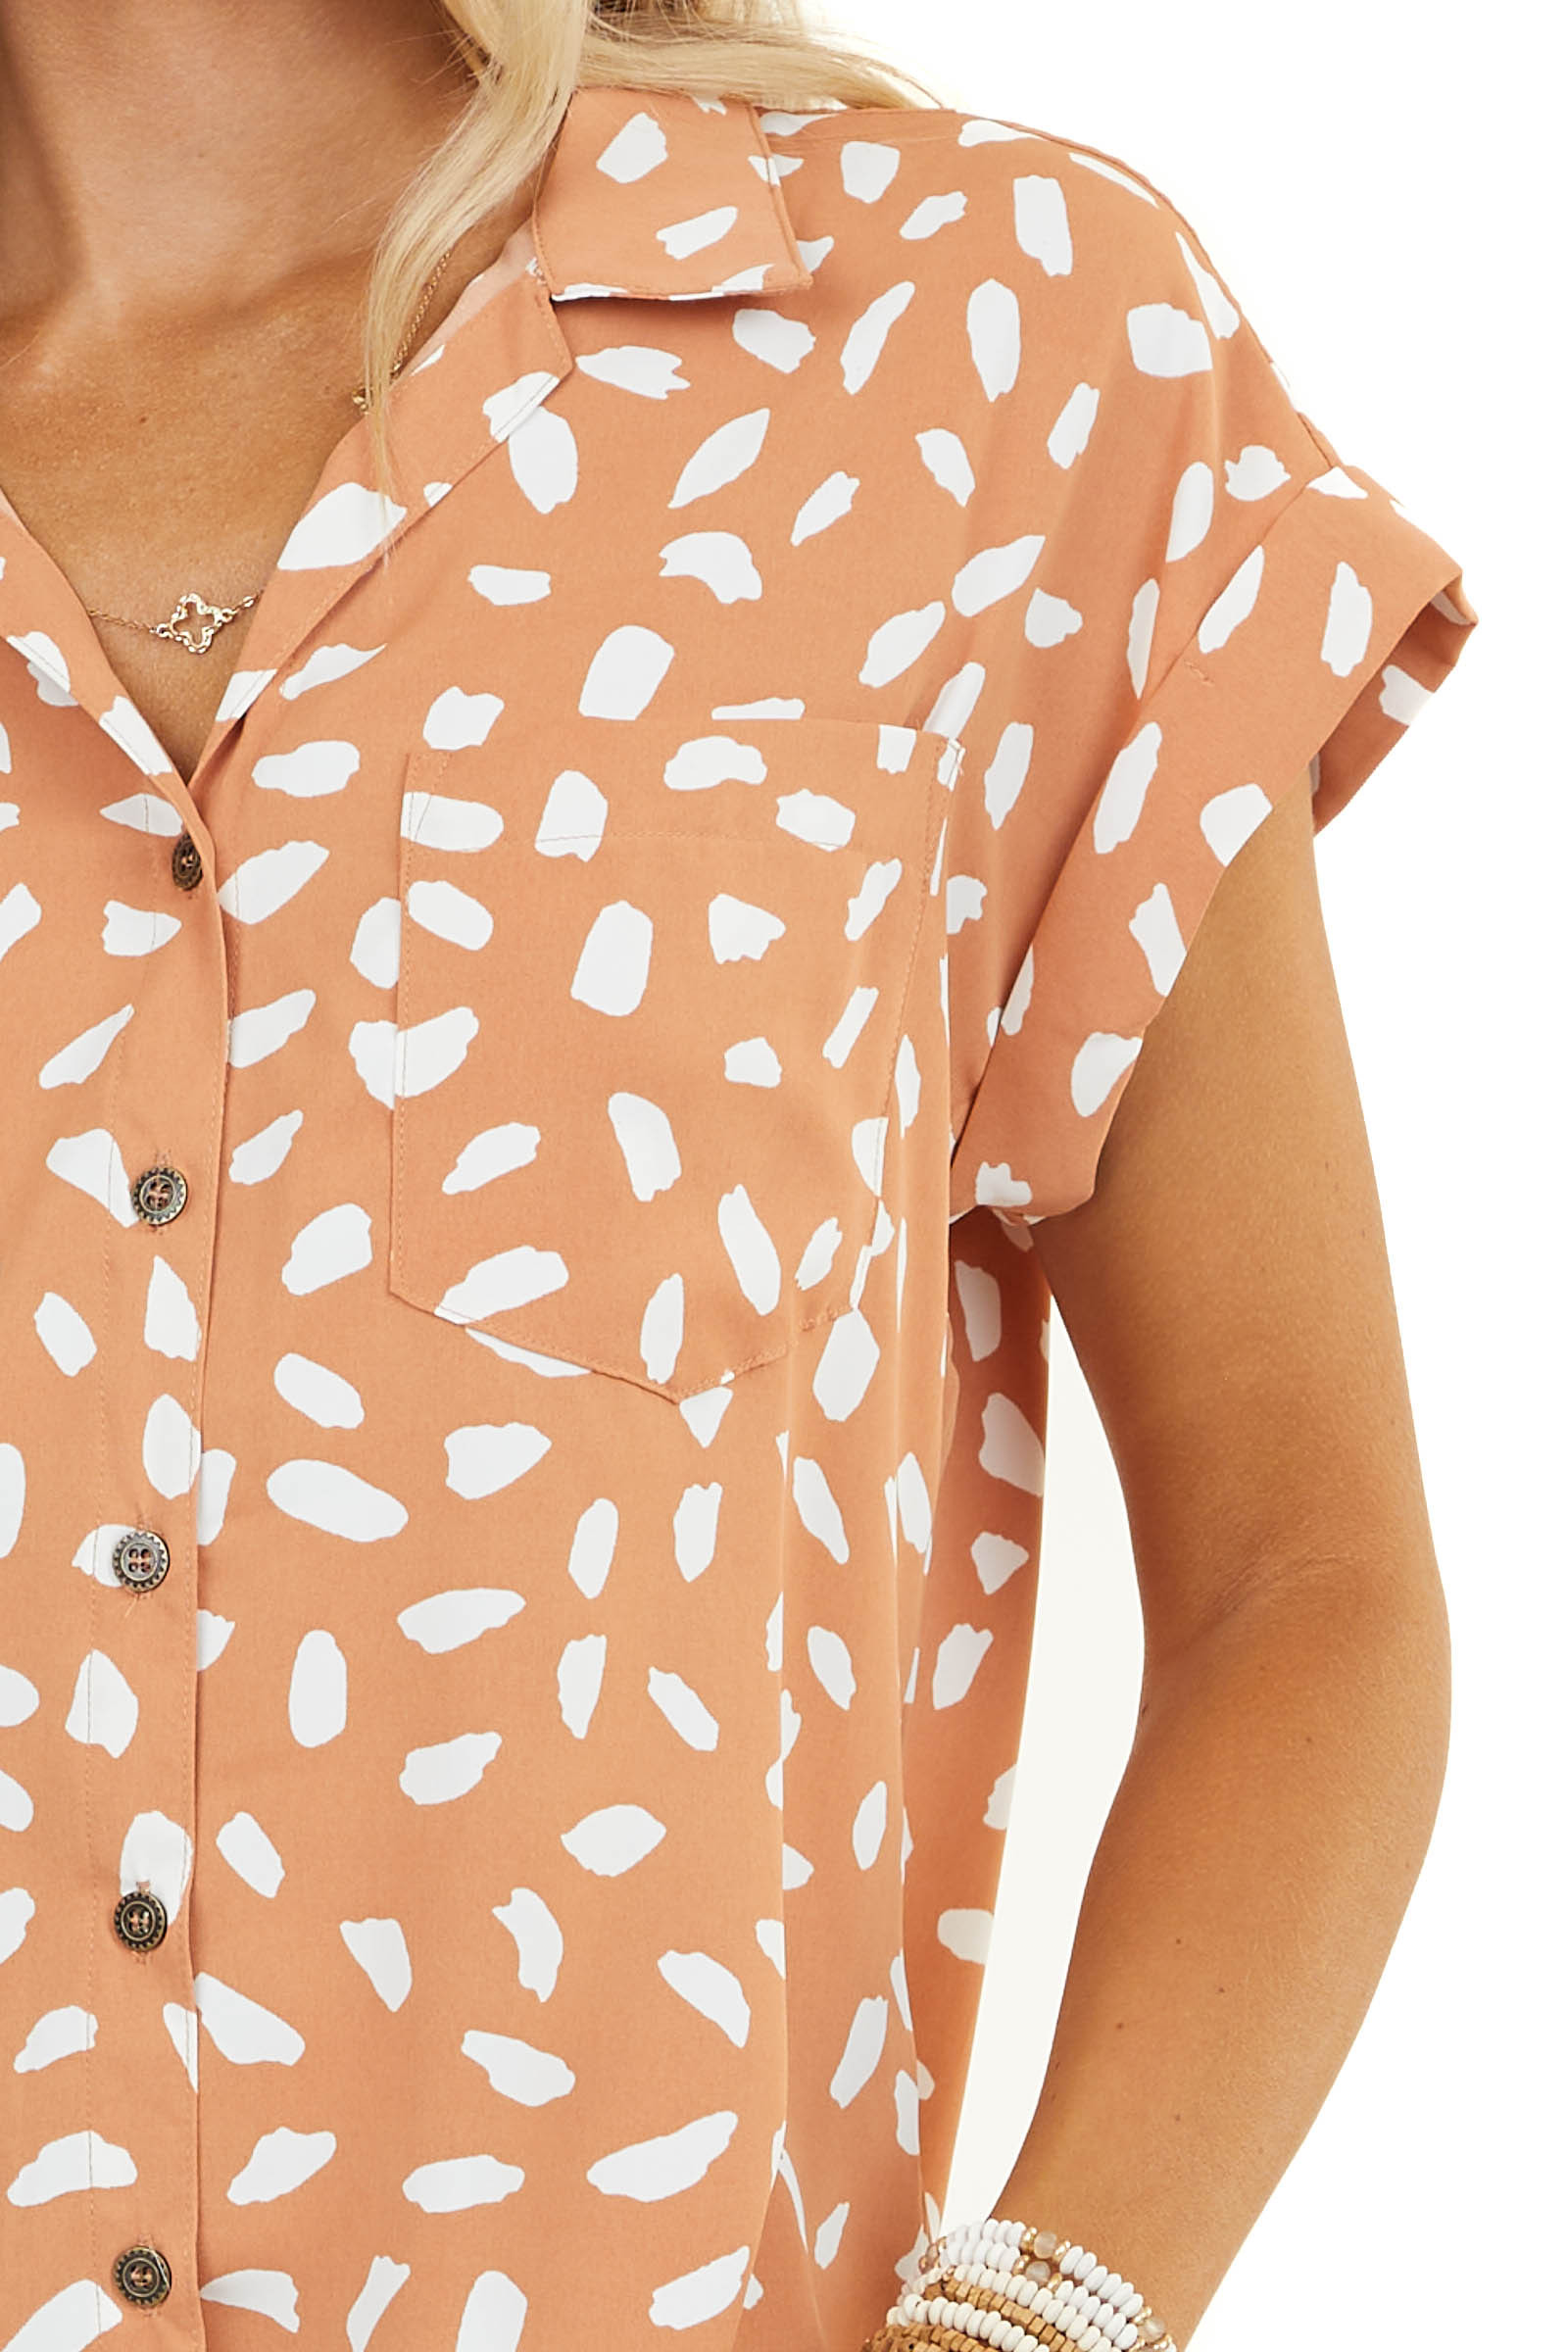 Dusty Salmon and White Patterned Woven Button Up Top